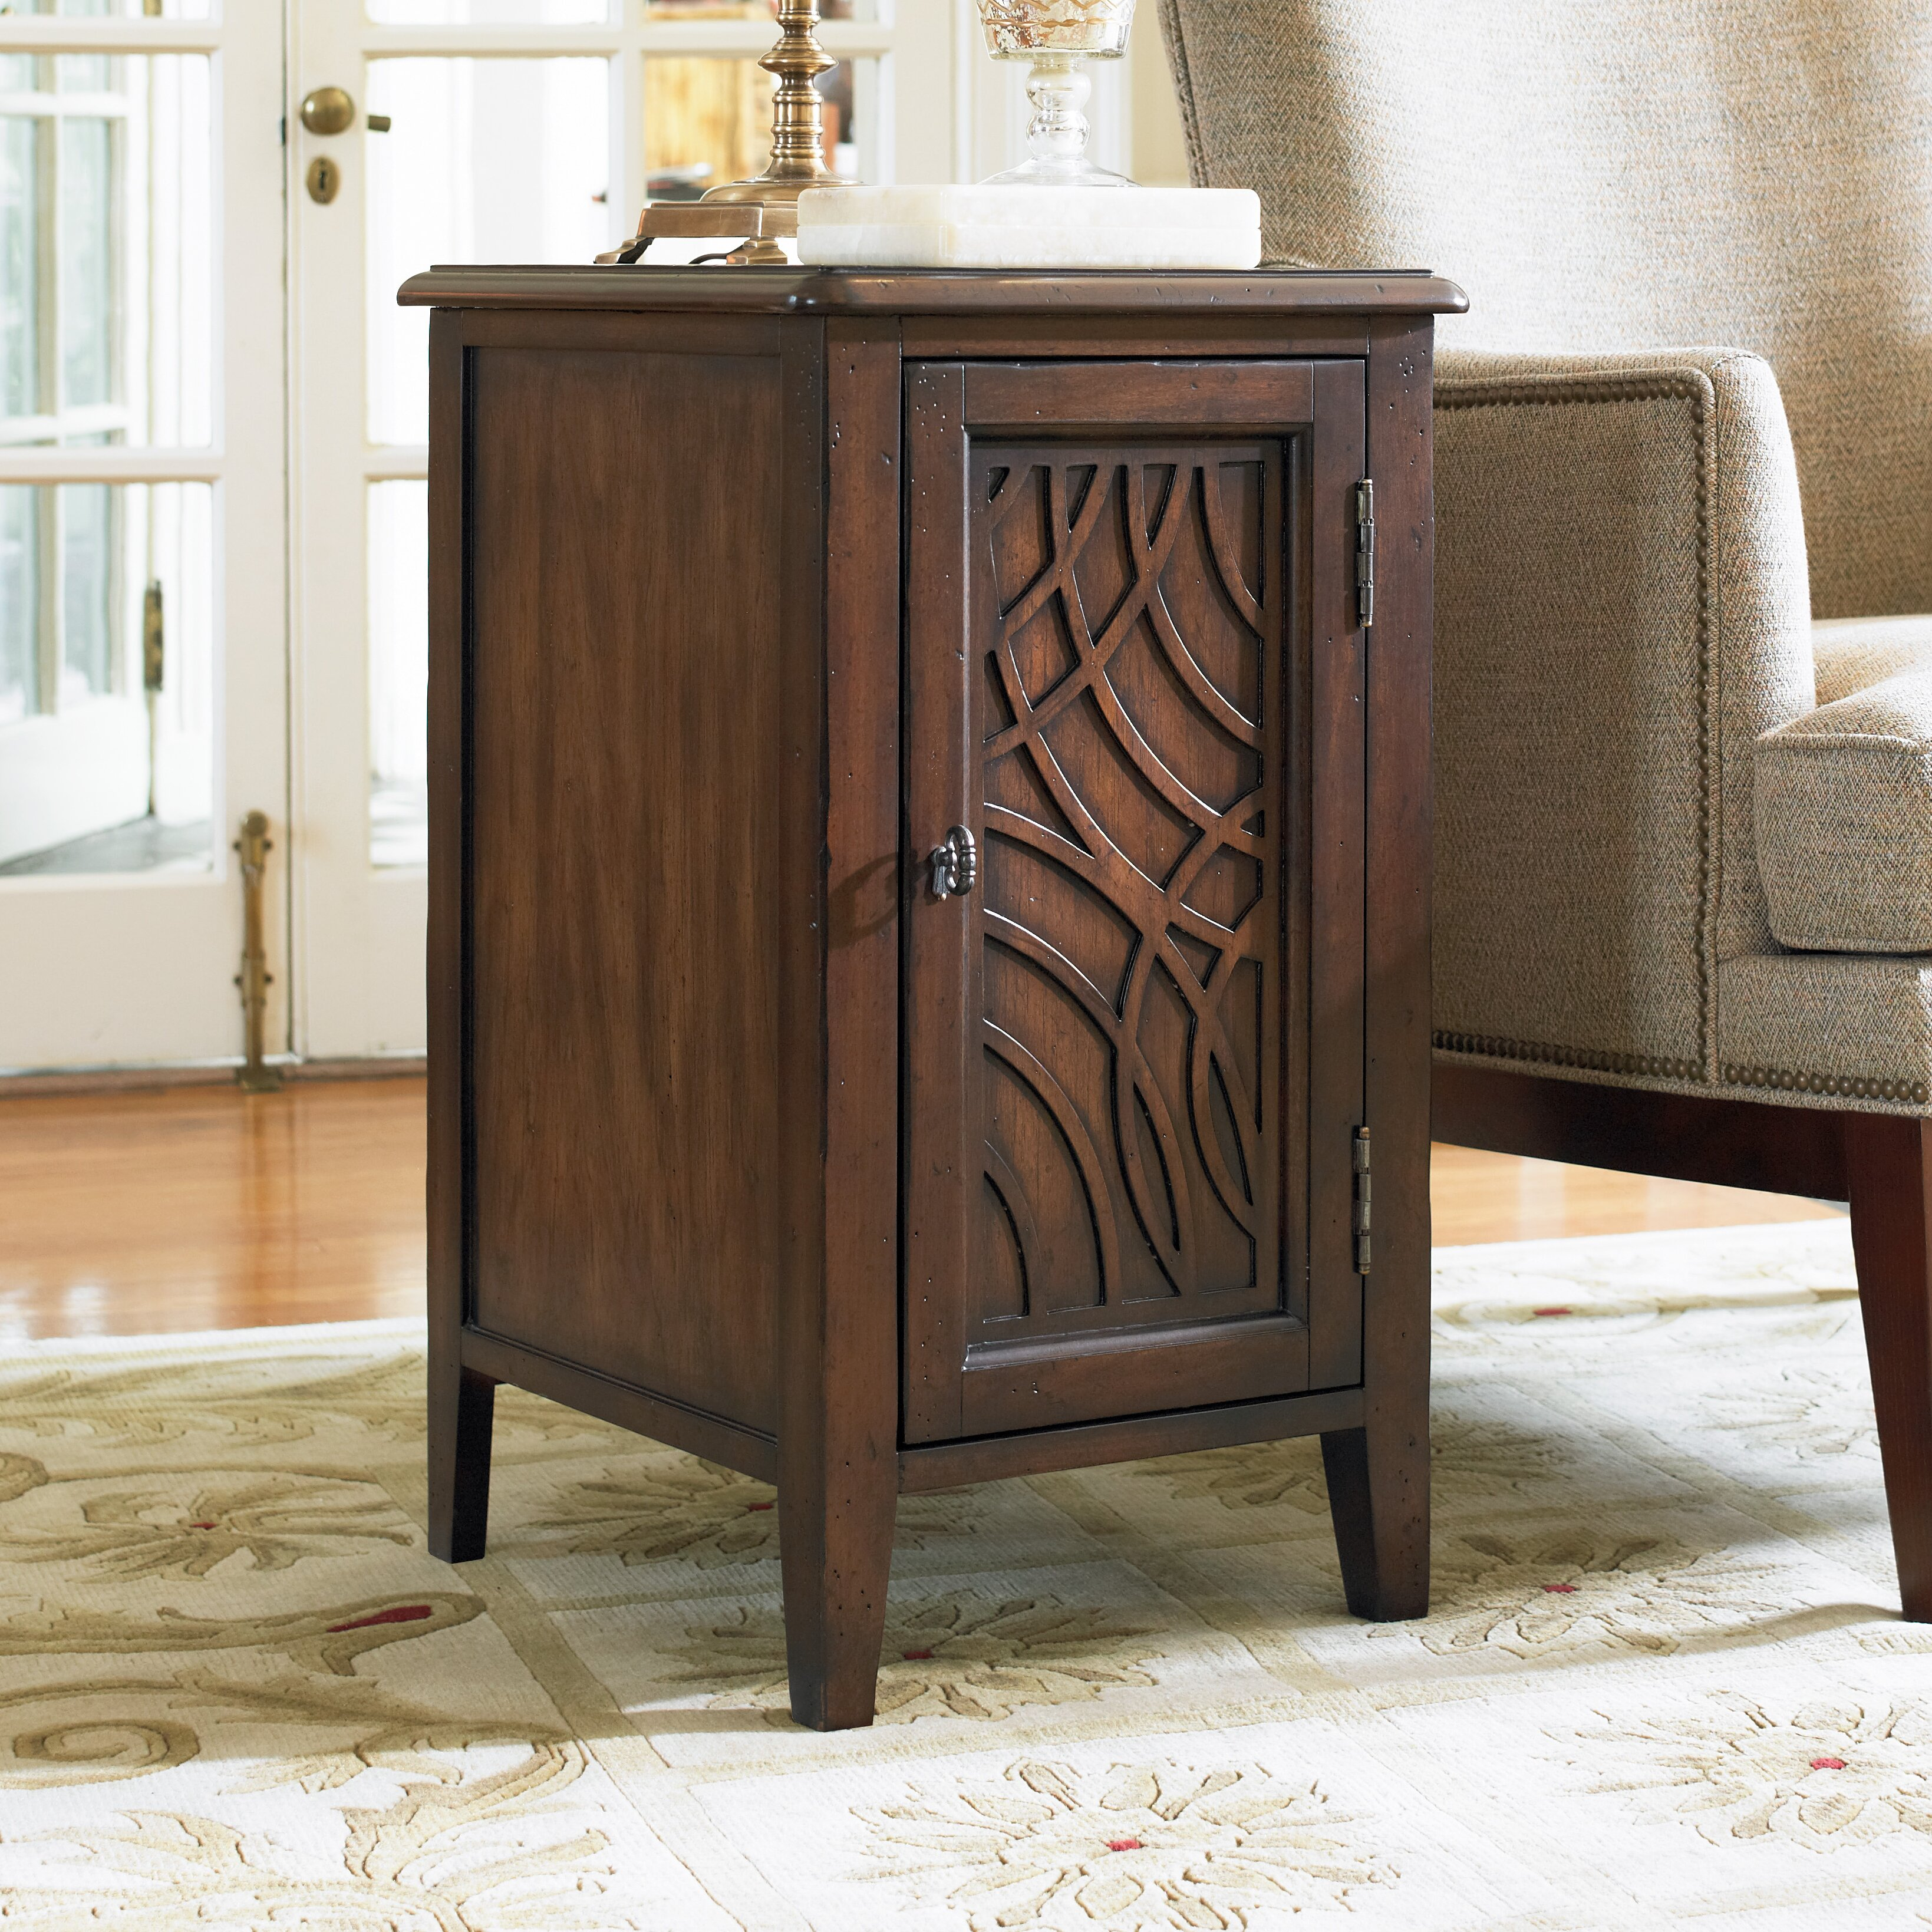 Hooker Furniture Seven Seas Chairside Chest & Reviews. How To Get A Help Desk Job Without Experience. Desk Glider. Essential Oils Desk Reference Pdf Download. Antique Coffee Table. Ashley Desks Home Office. 3 Drawer Nightstand White. Help Desk Starting Salary. Black Vanity Table With Mirror